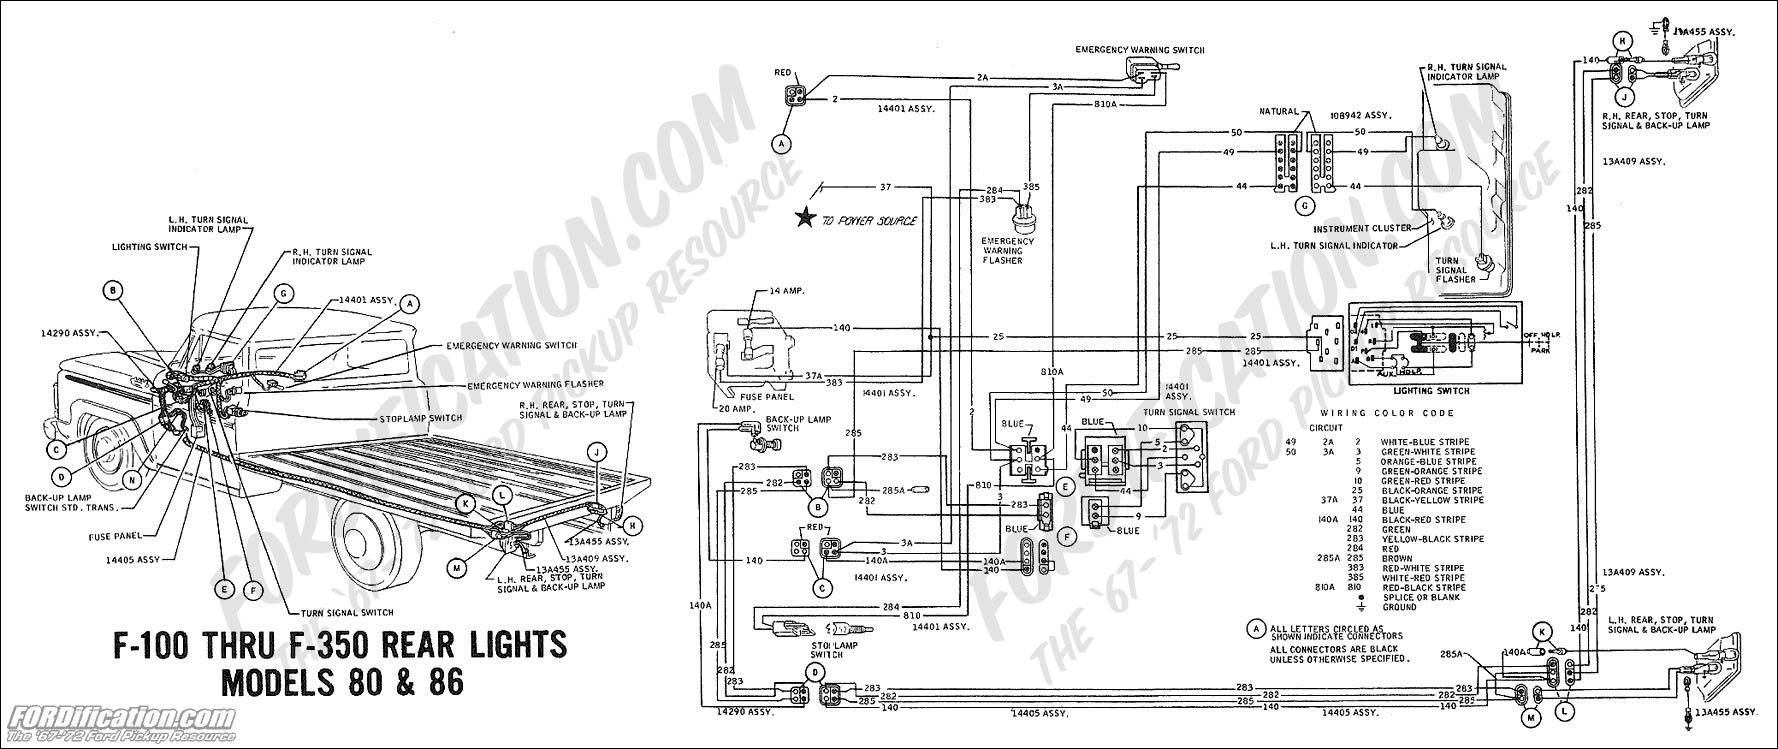 wiring_69rearlights mdls80 86 ford truck technical drawings and schematics section h wiring Ford F700 Fuel Wiring Diagram at couponss.co